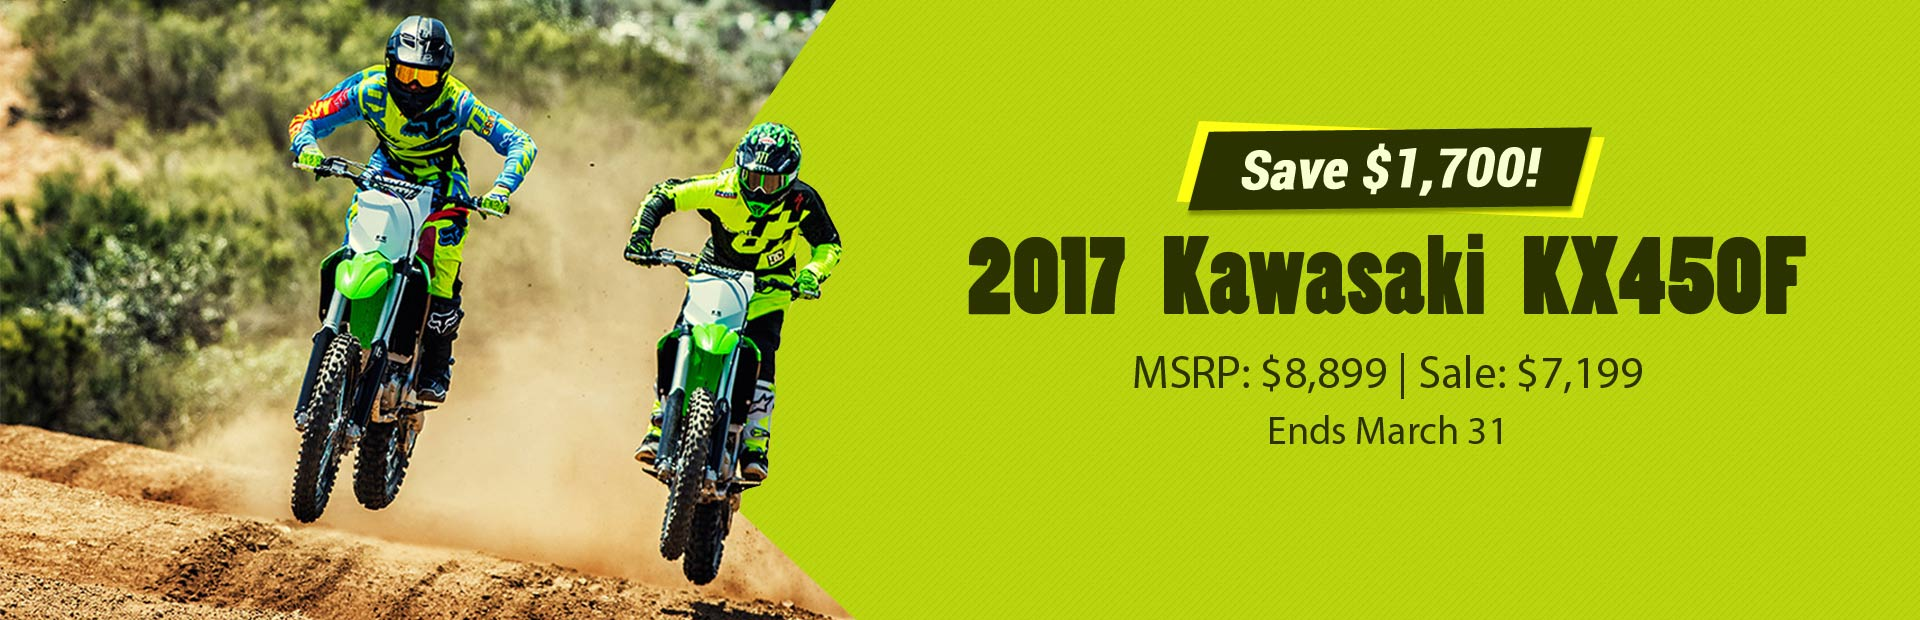 Save $1,700 on the 2017 Kawasaki KX450 F!